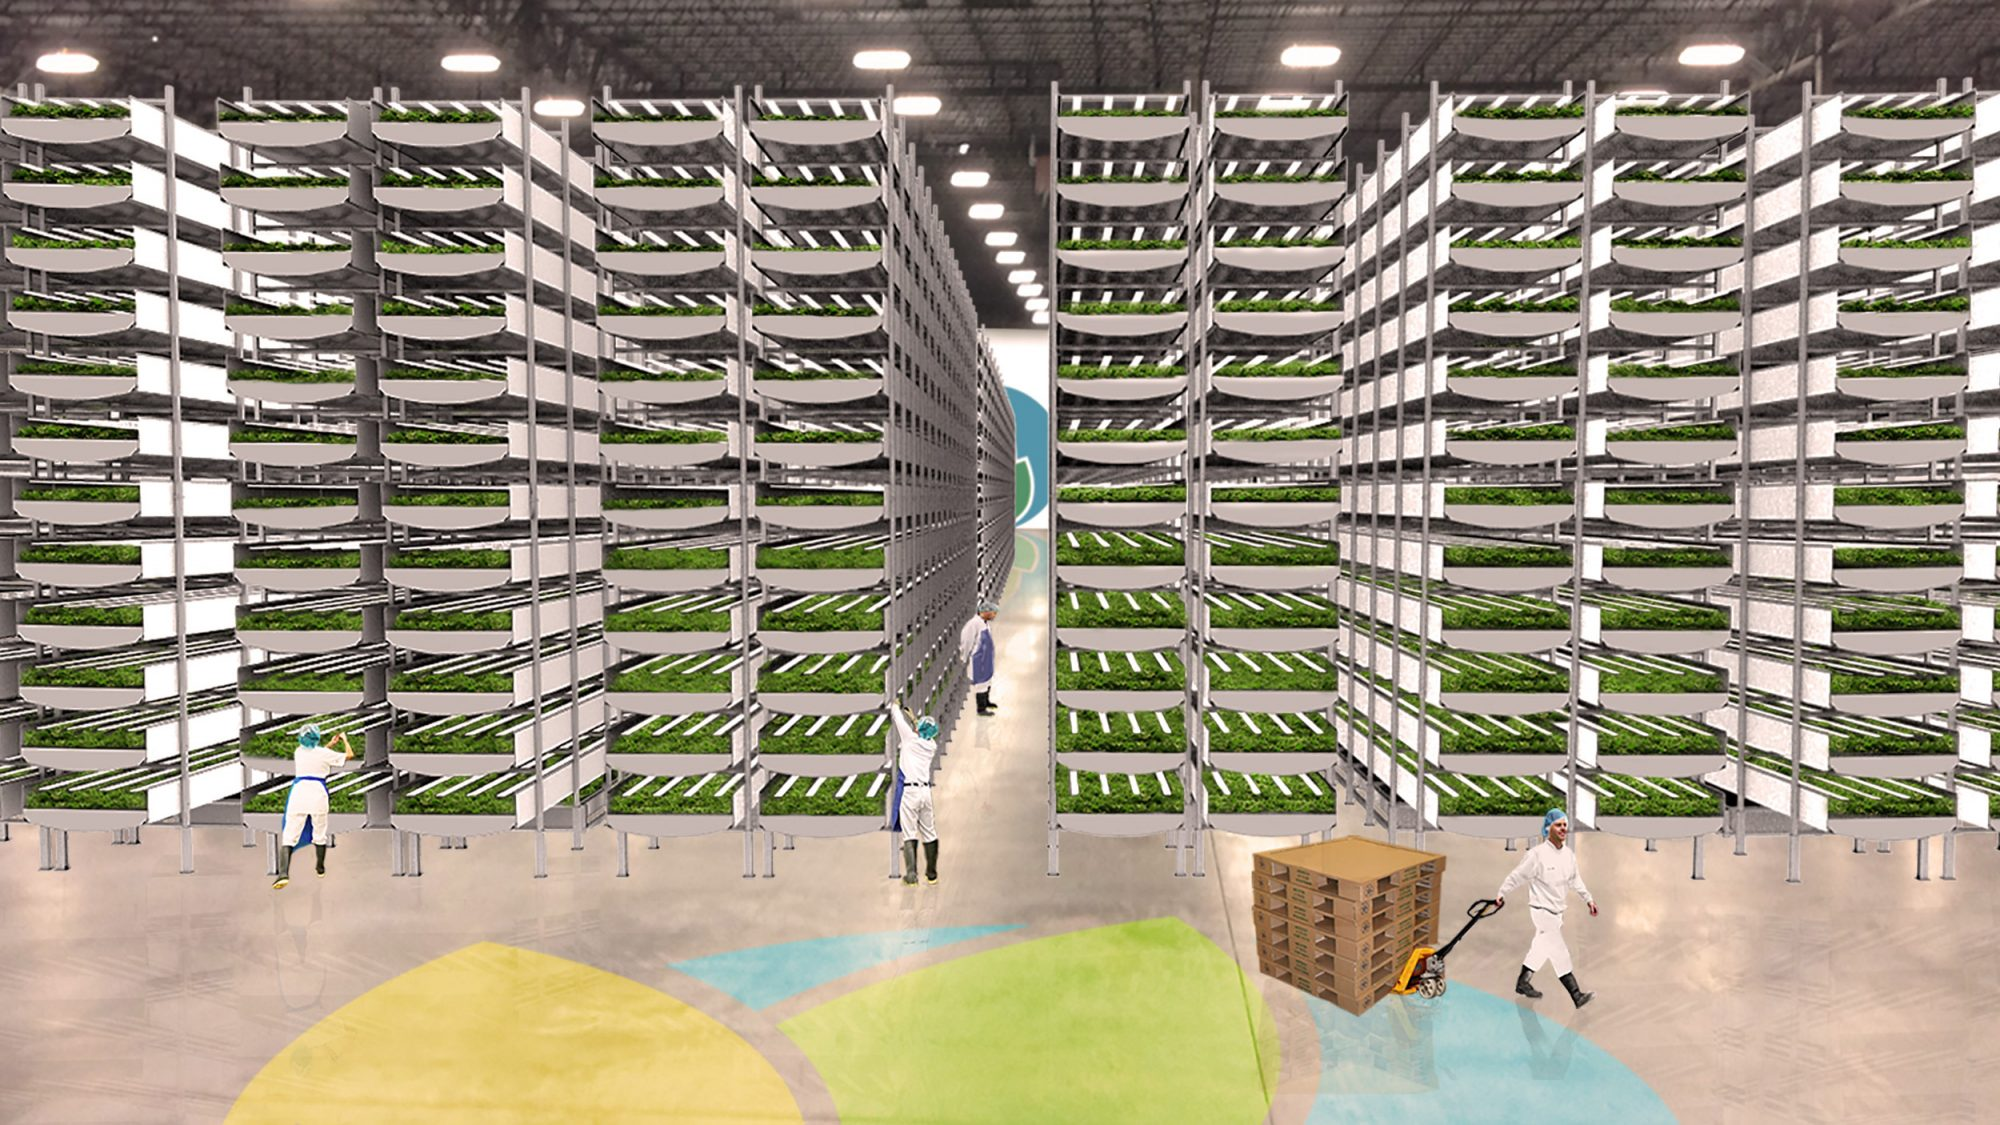 AeroFarms Indoor Vertical Farming